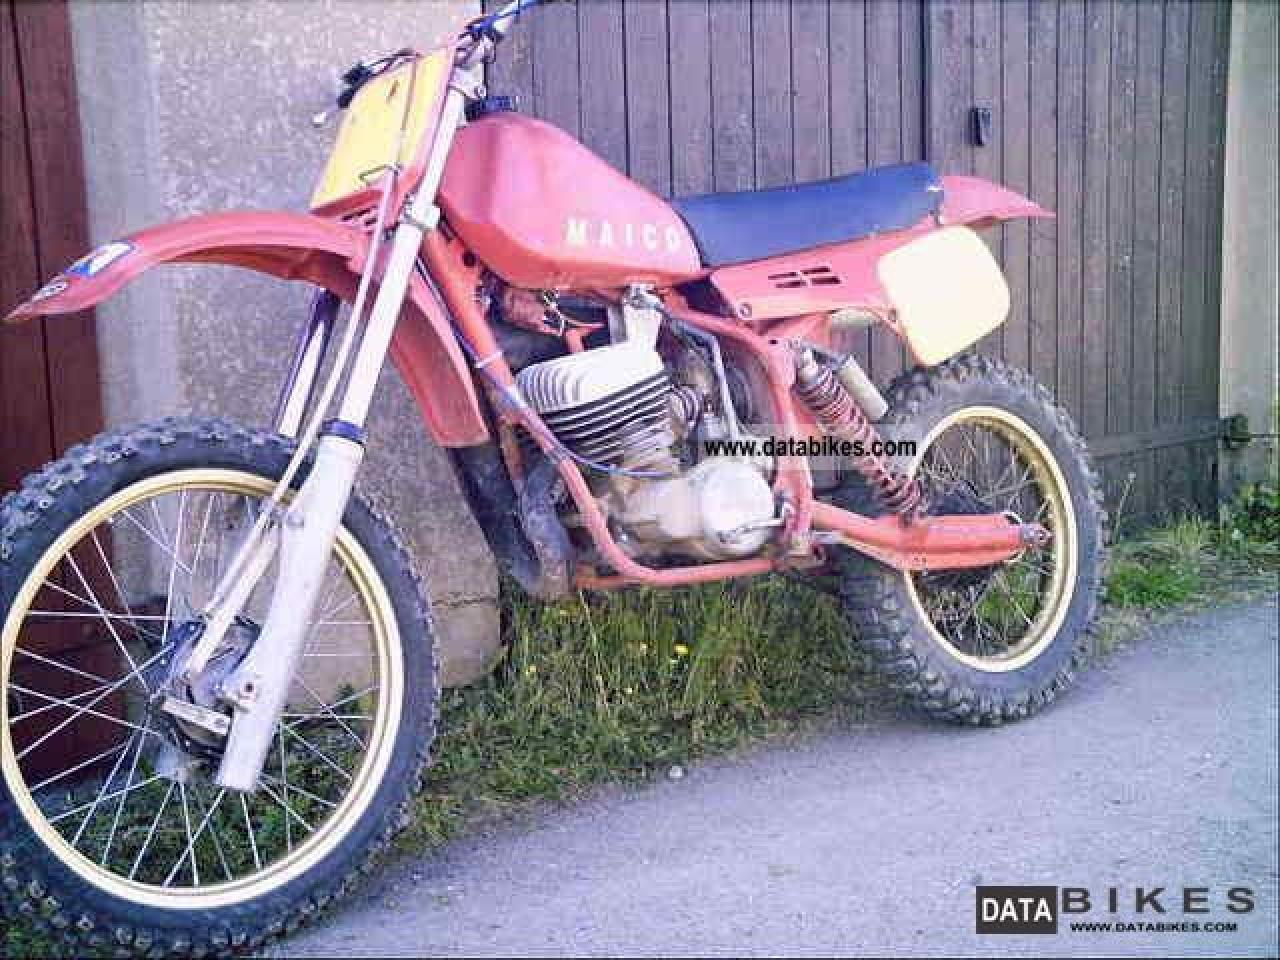 Maico MD 250 WK 1978 images #103087